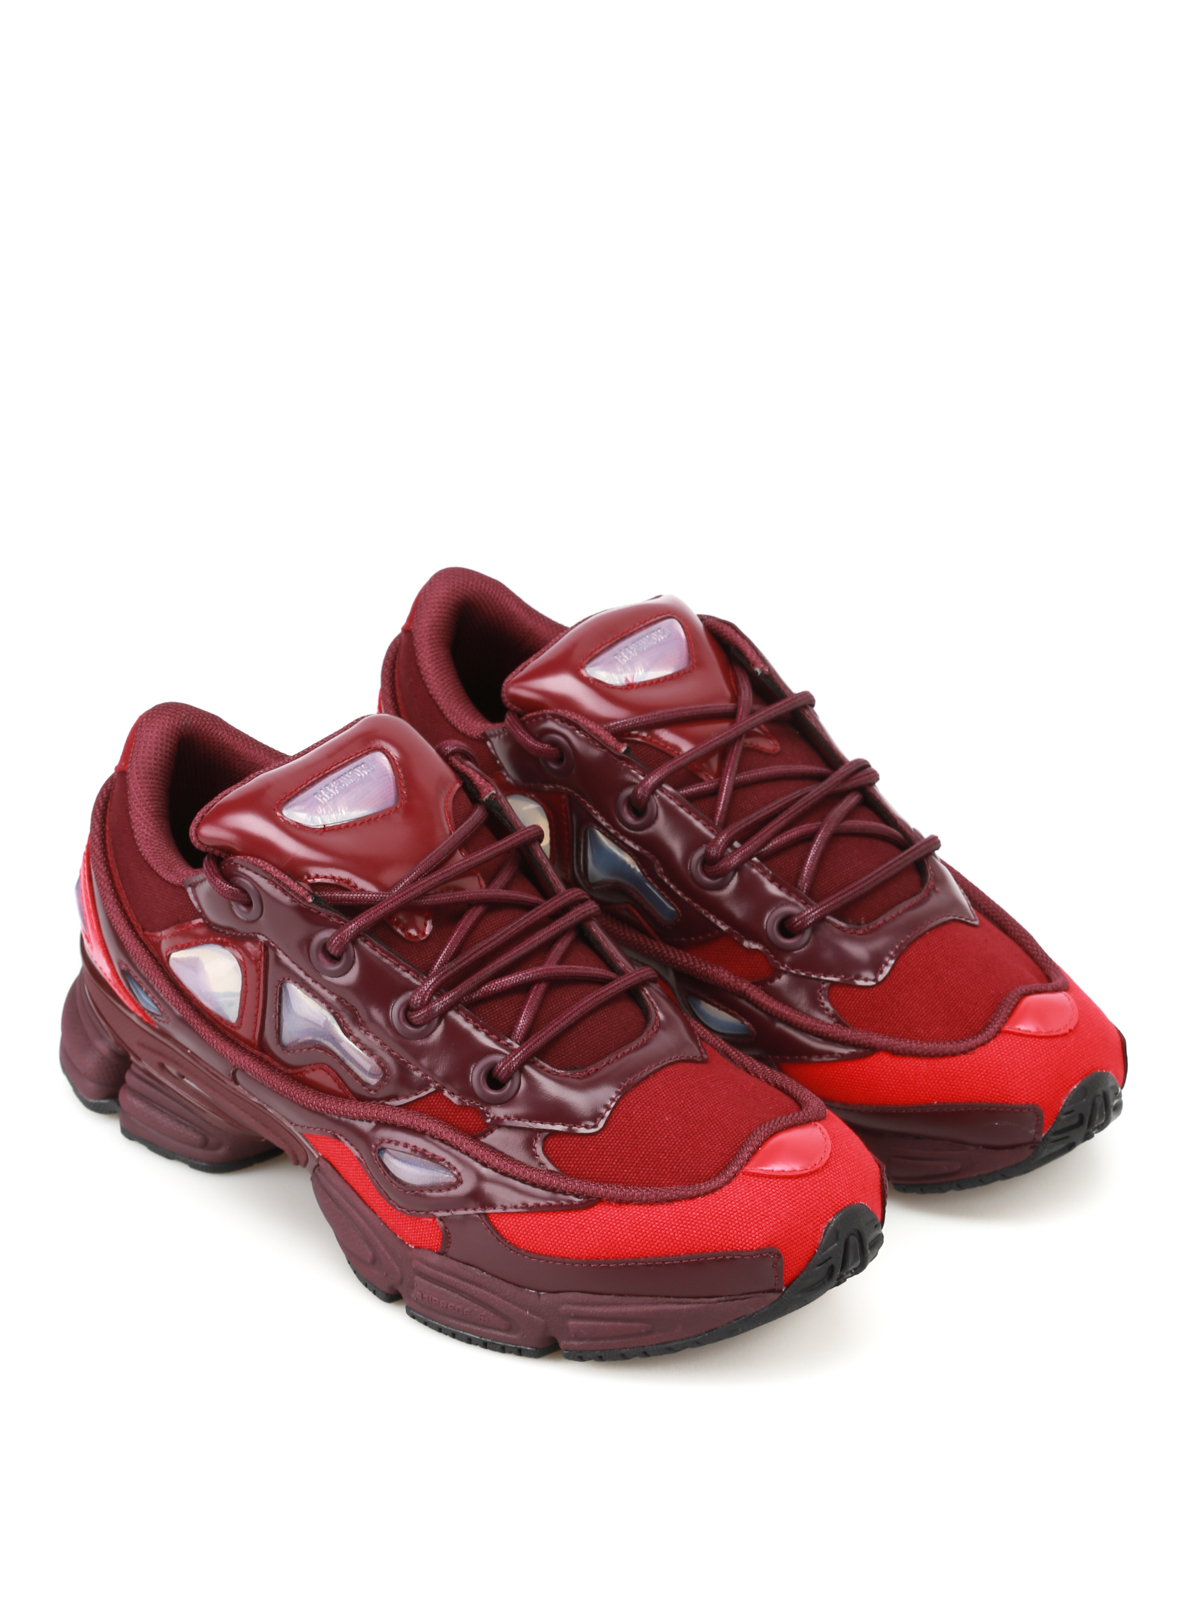 official photos de290 0ebfc Raf Simons Adidas - Ozweego III sneakers - trainers - B22538 ...